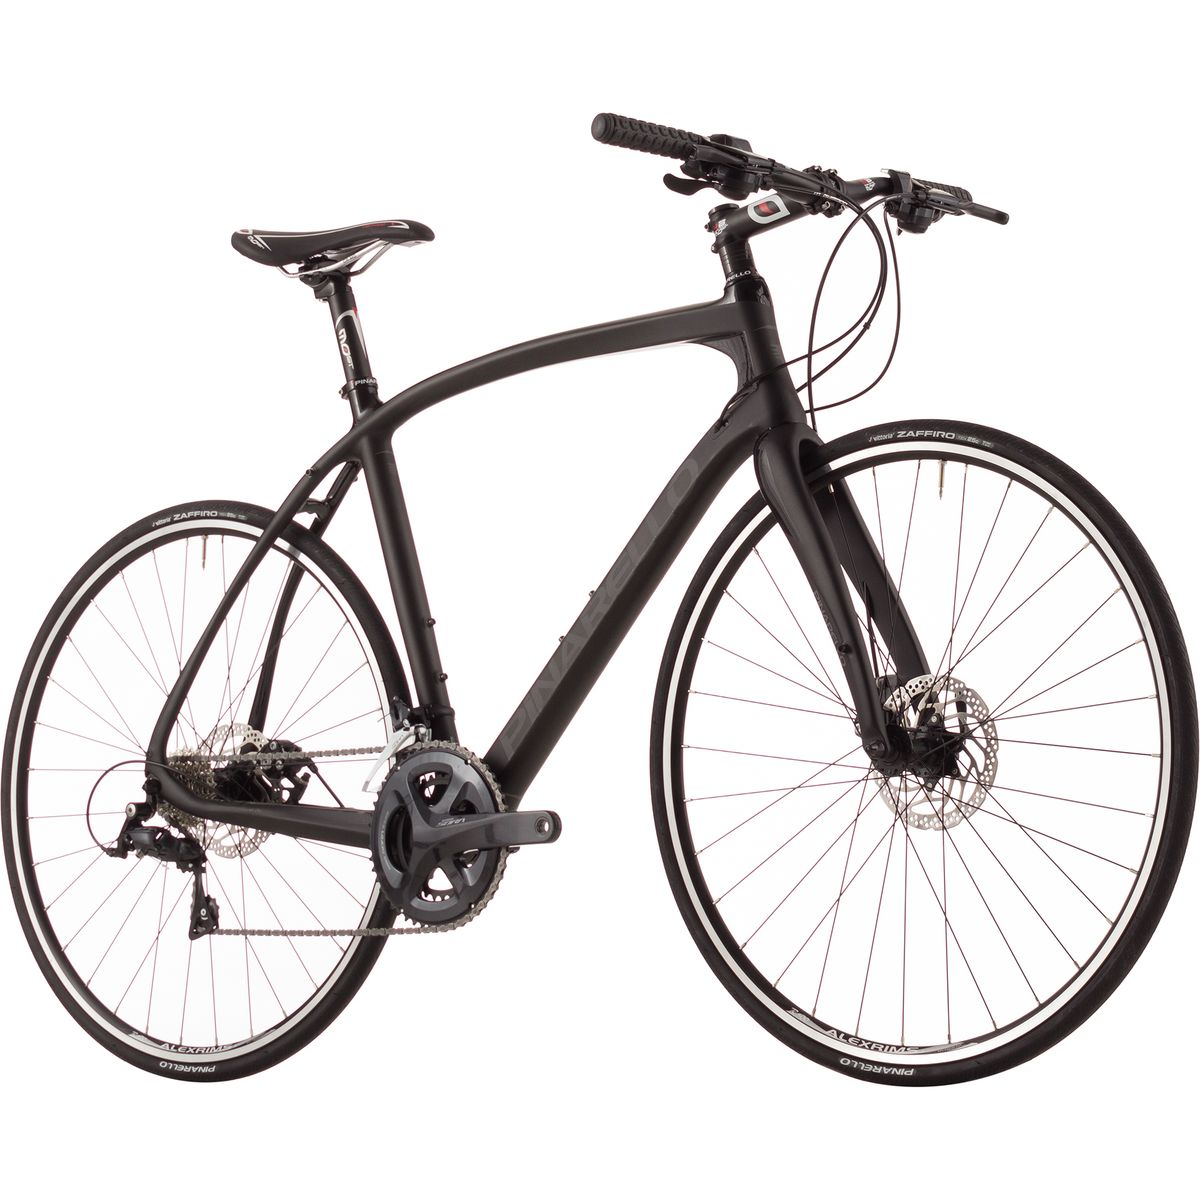 Gearboxes Are  ing Evs 129152 in addition 2015 Kia Soul Heater Blower Wiring Diagram besides Ridley Noah Sl Ultegra  plete Road Bike 2017 together with Diamondback Overdrive 2 Hardtail Mtb Bike 2015 further Showthread. on car drivetrain